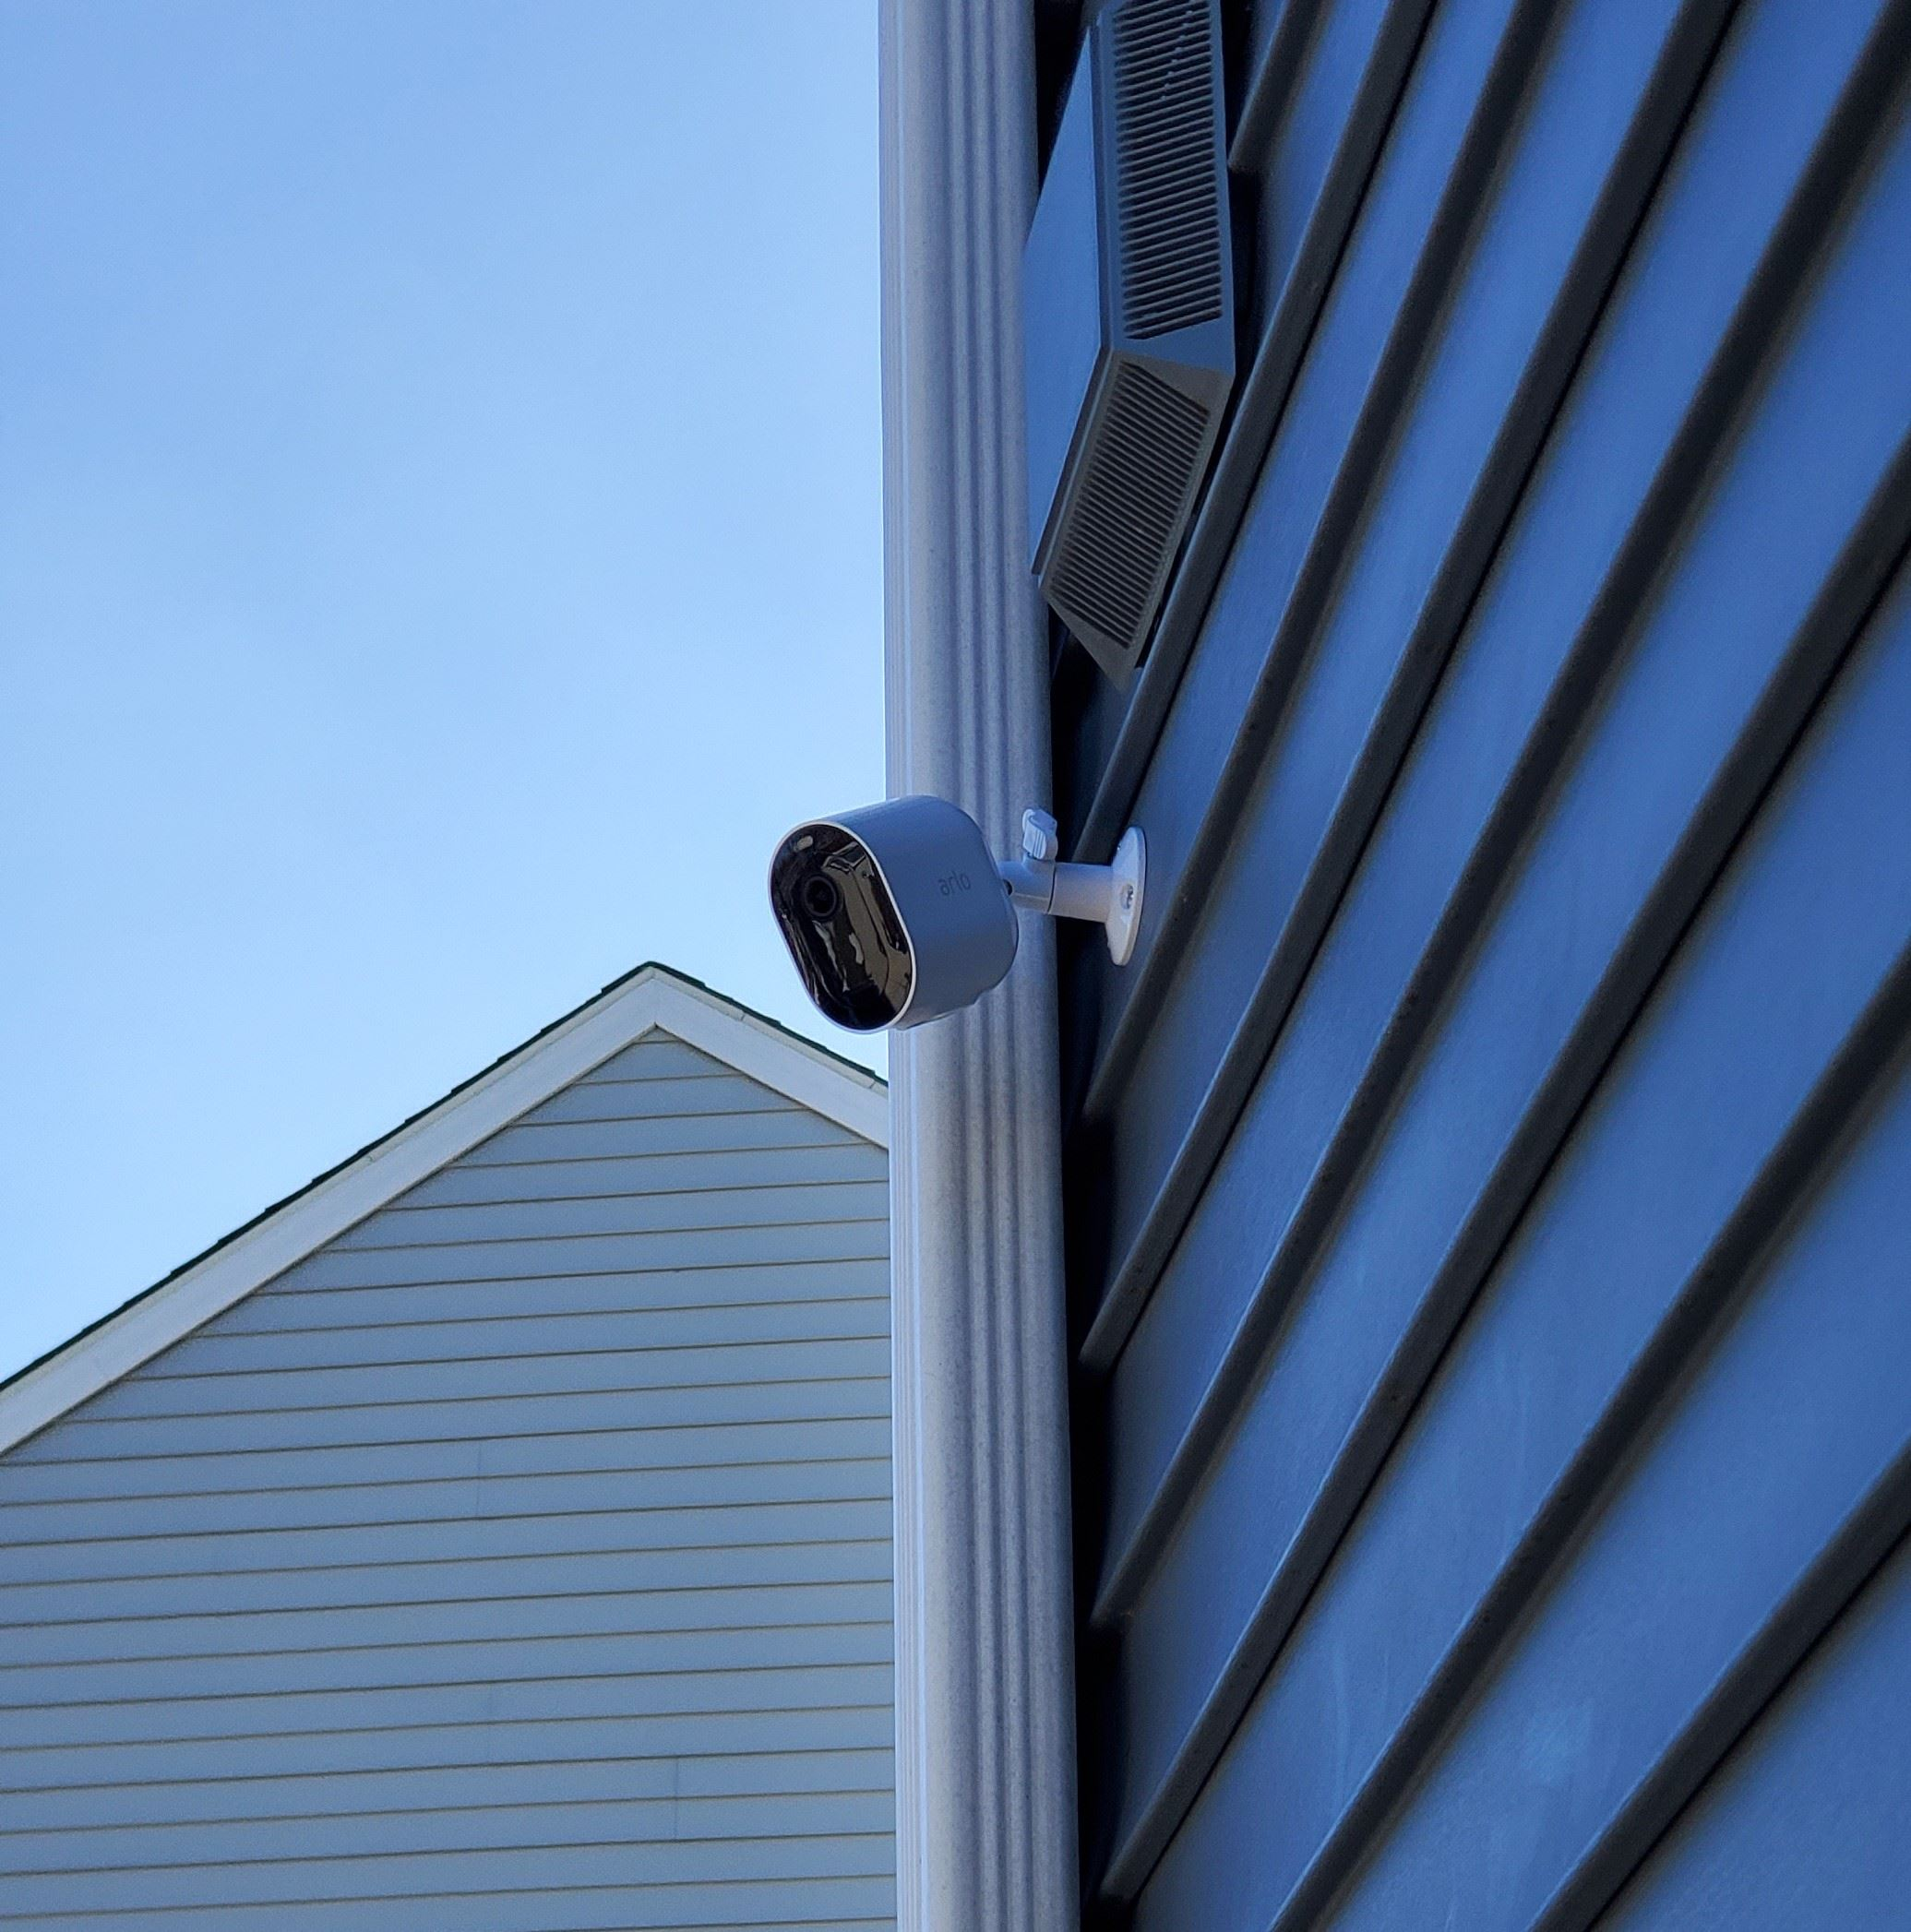 Security camera on blue house